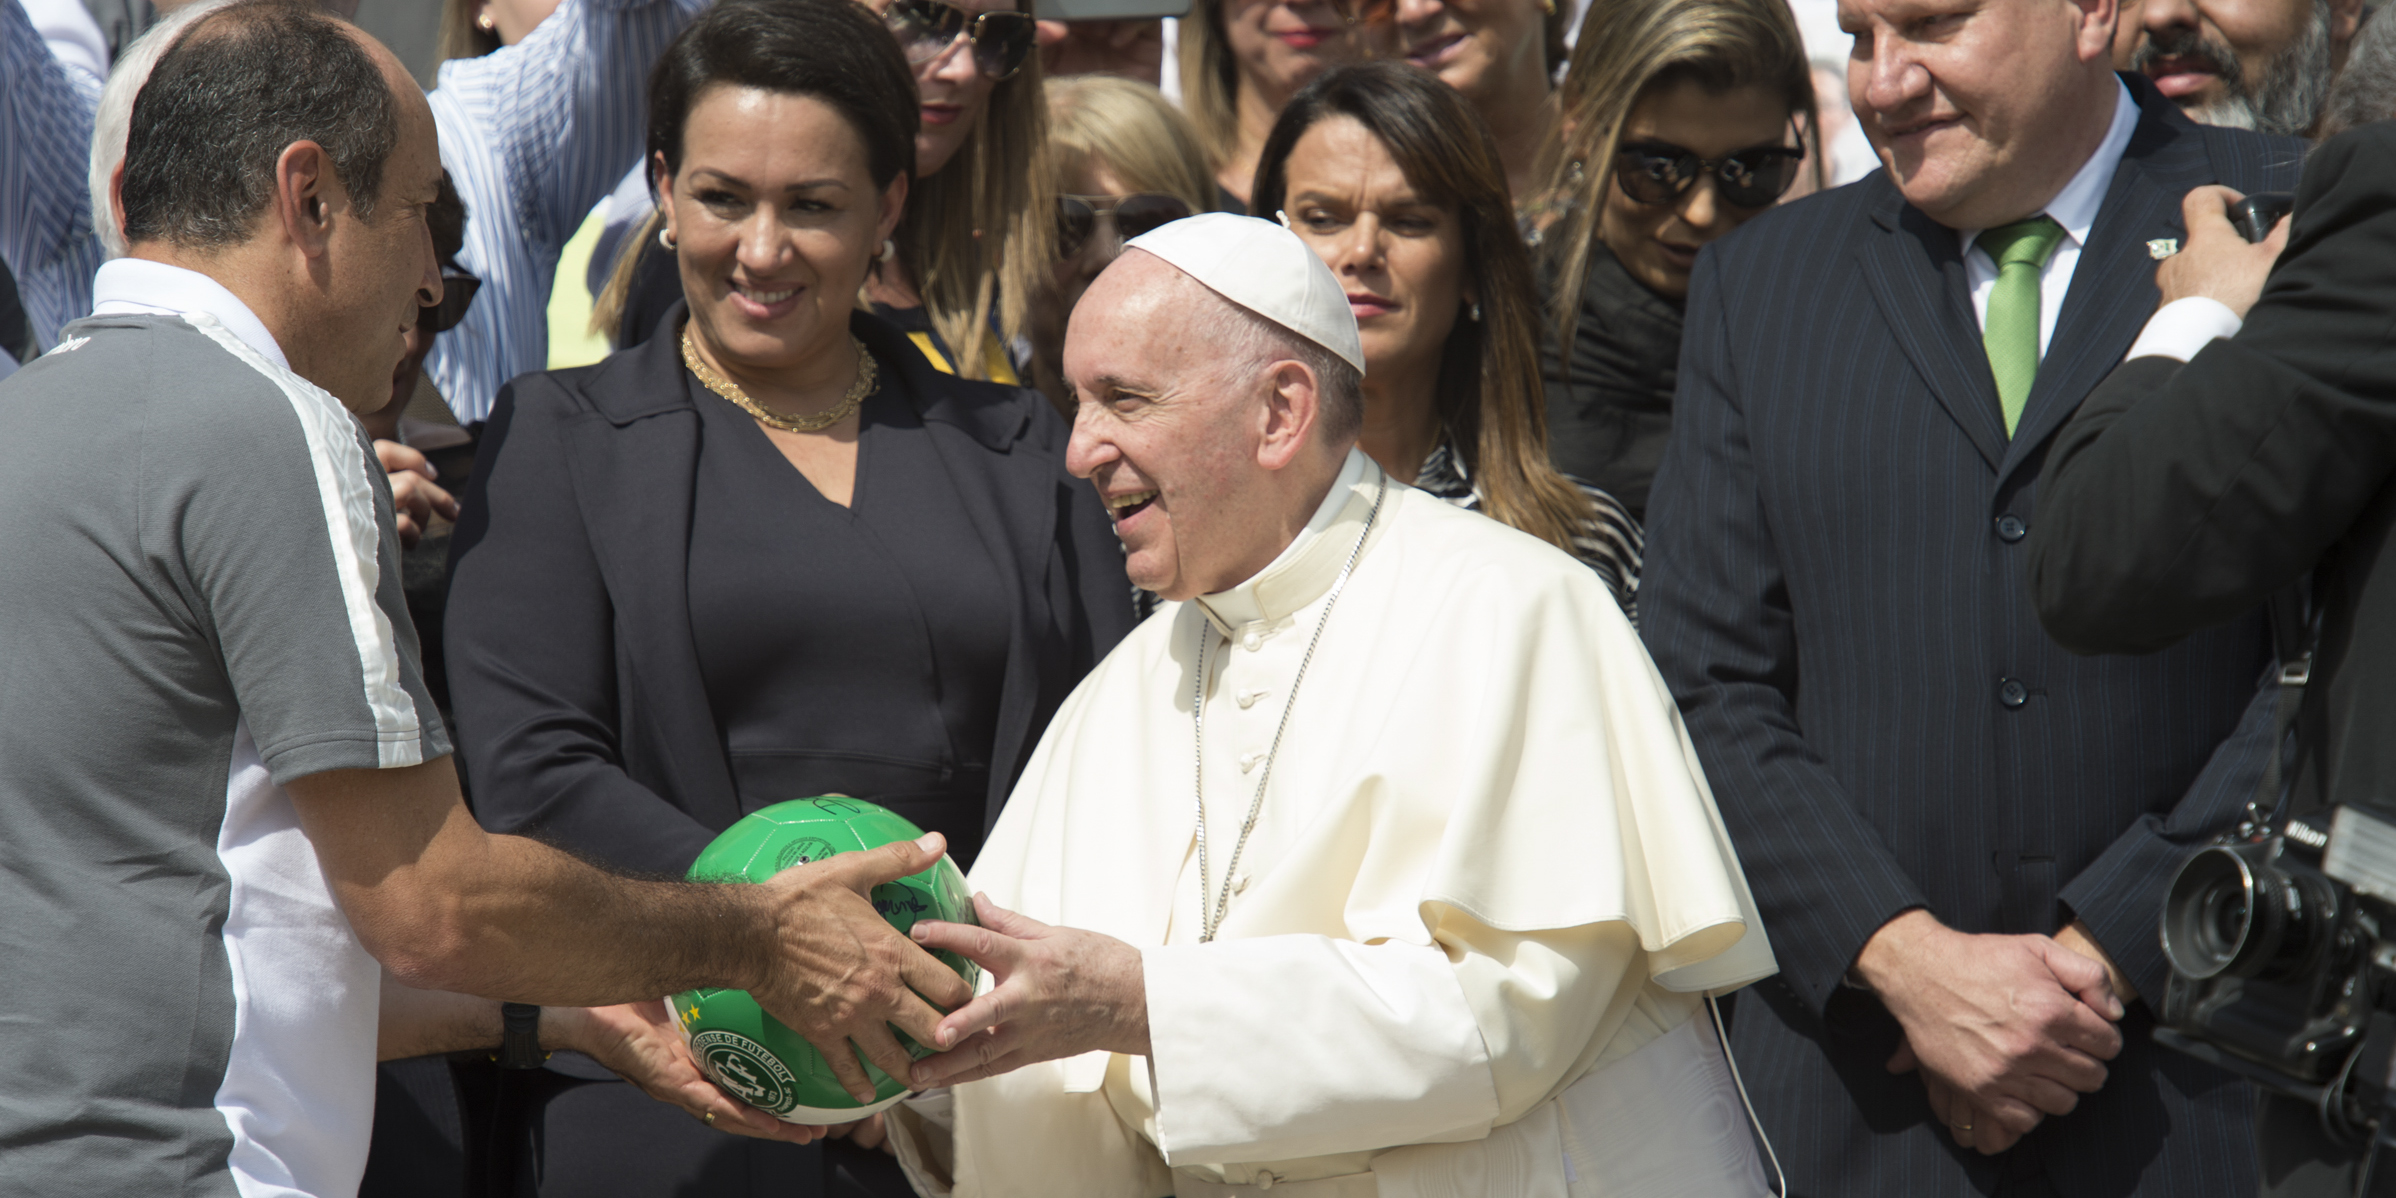 POPE FRANCIS,SOCCER BALL